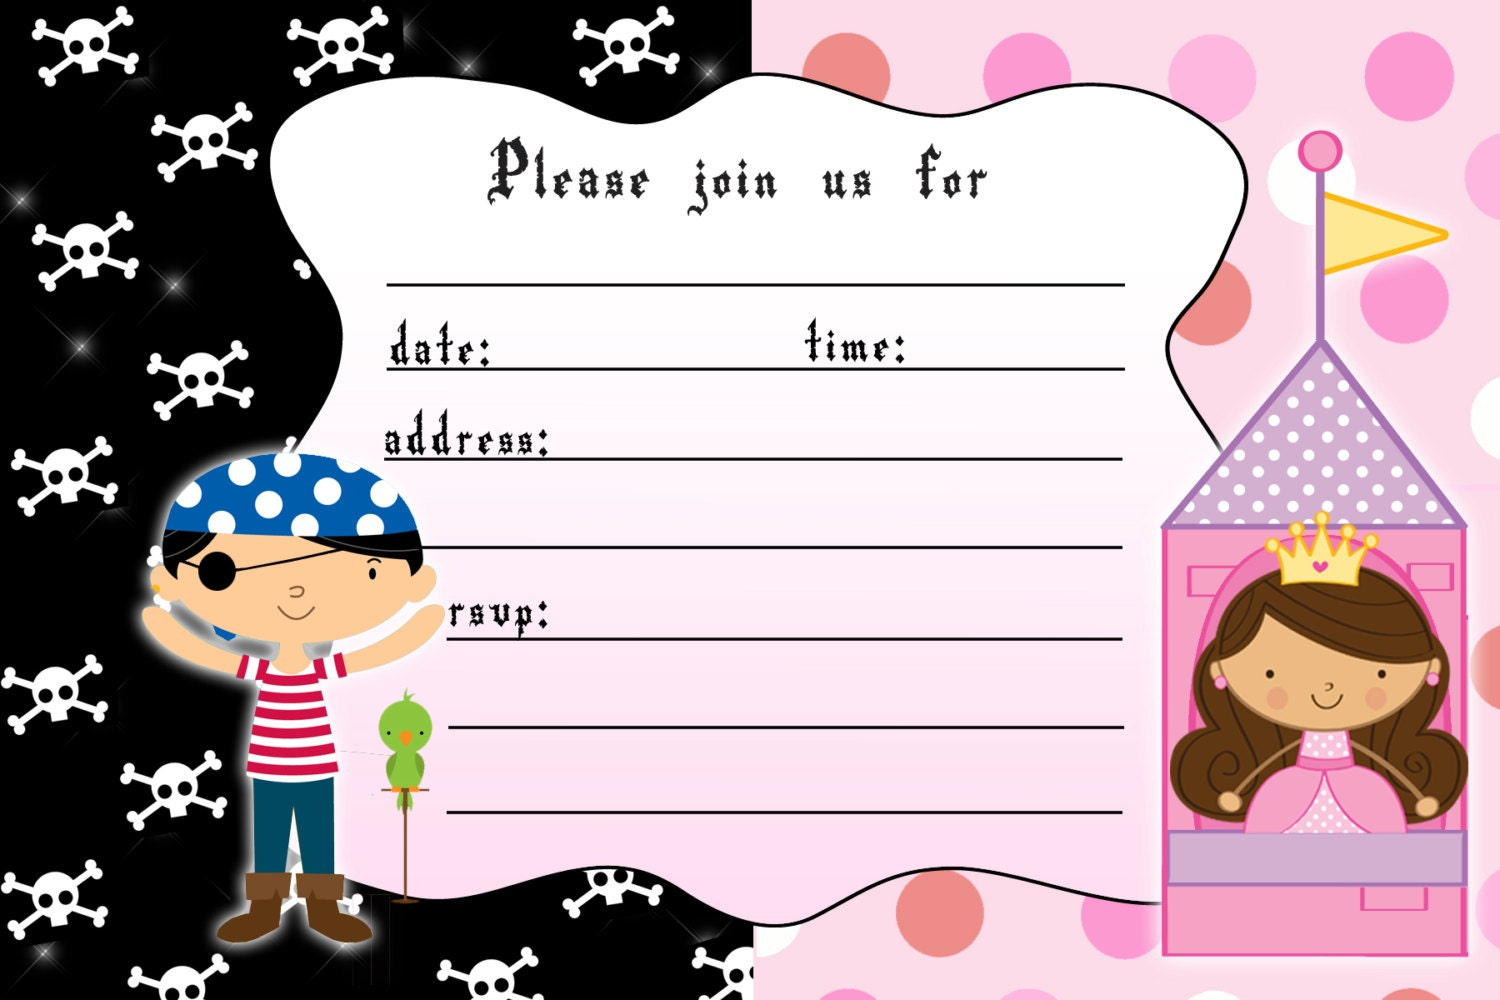 princess and pirate invitation templates com princess birthday invitation girl pirate boy by pinkthecat